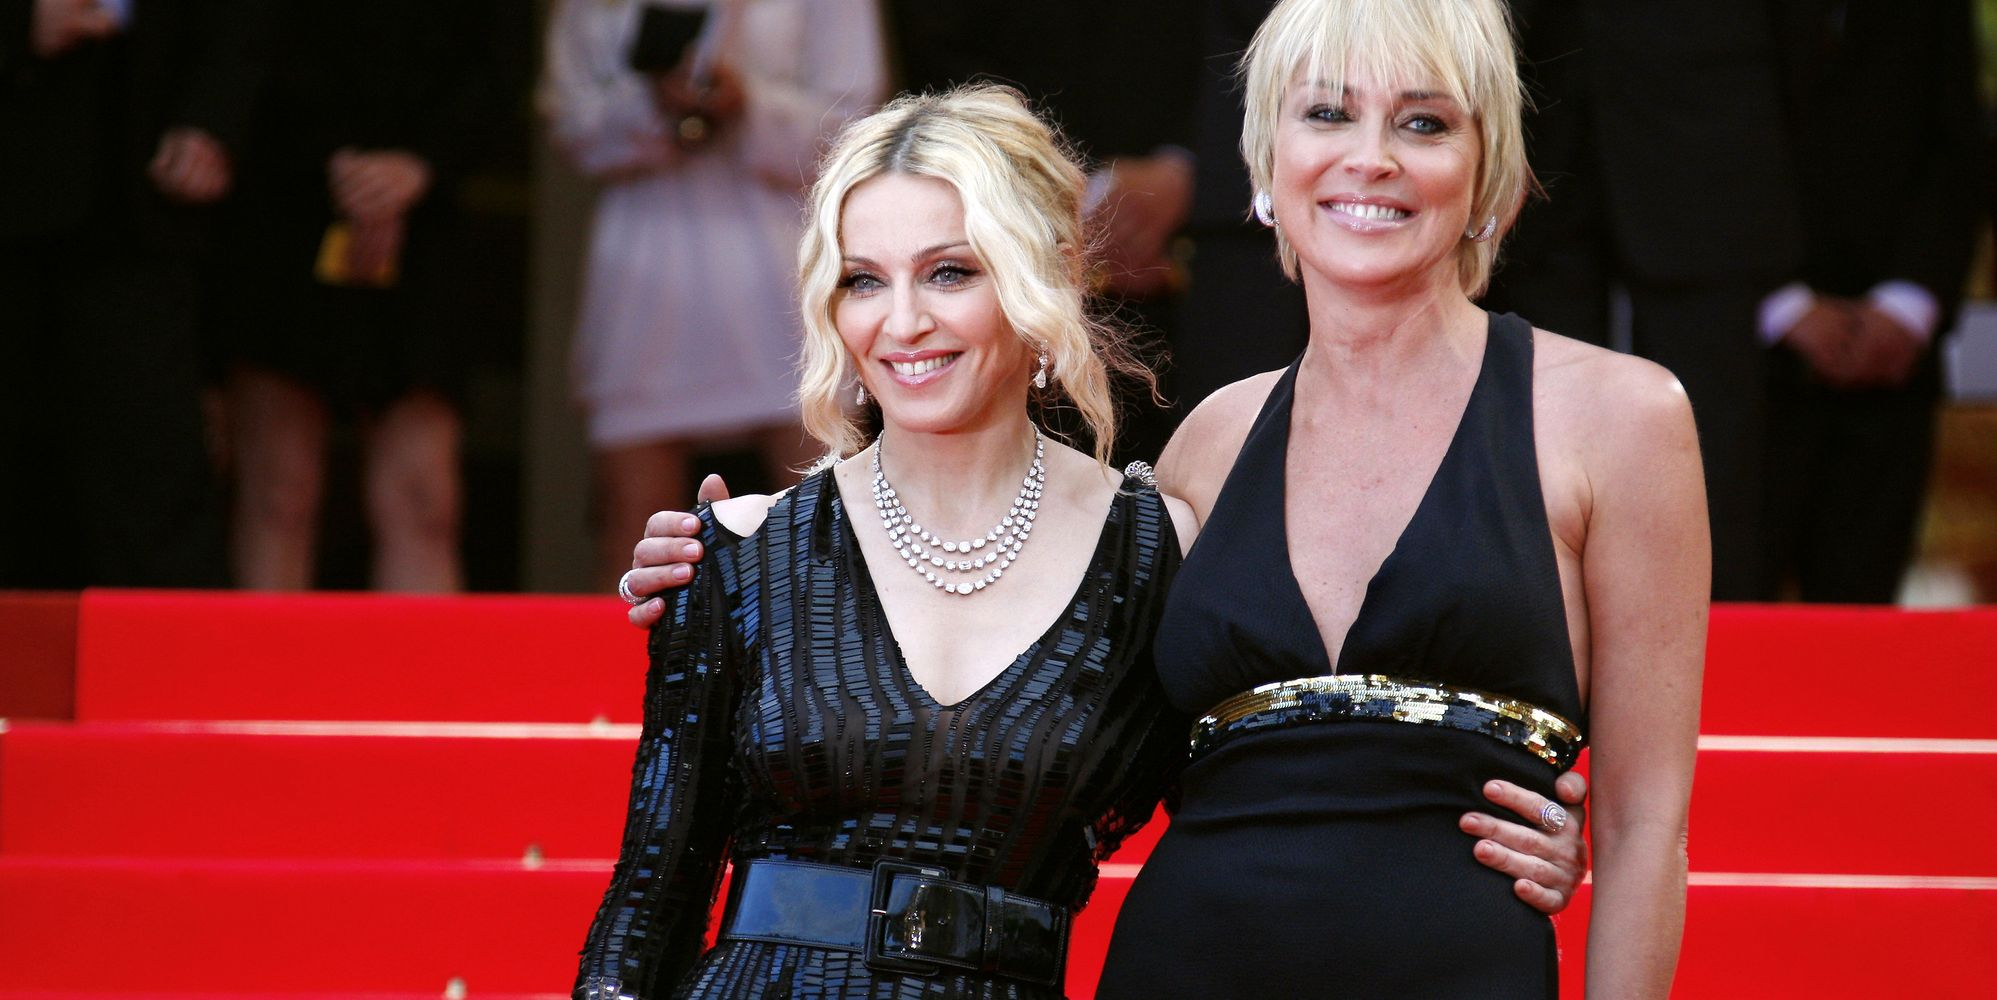 Sharon Stone Responds To Madonna After She's Branded 'Mediocre' By Singer